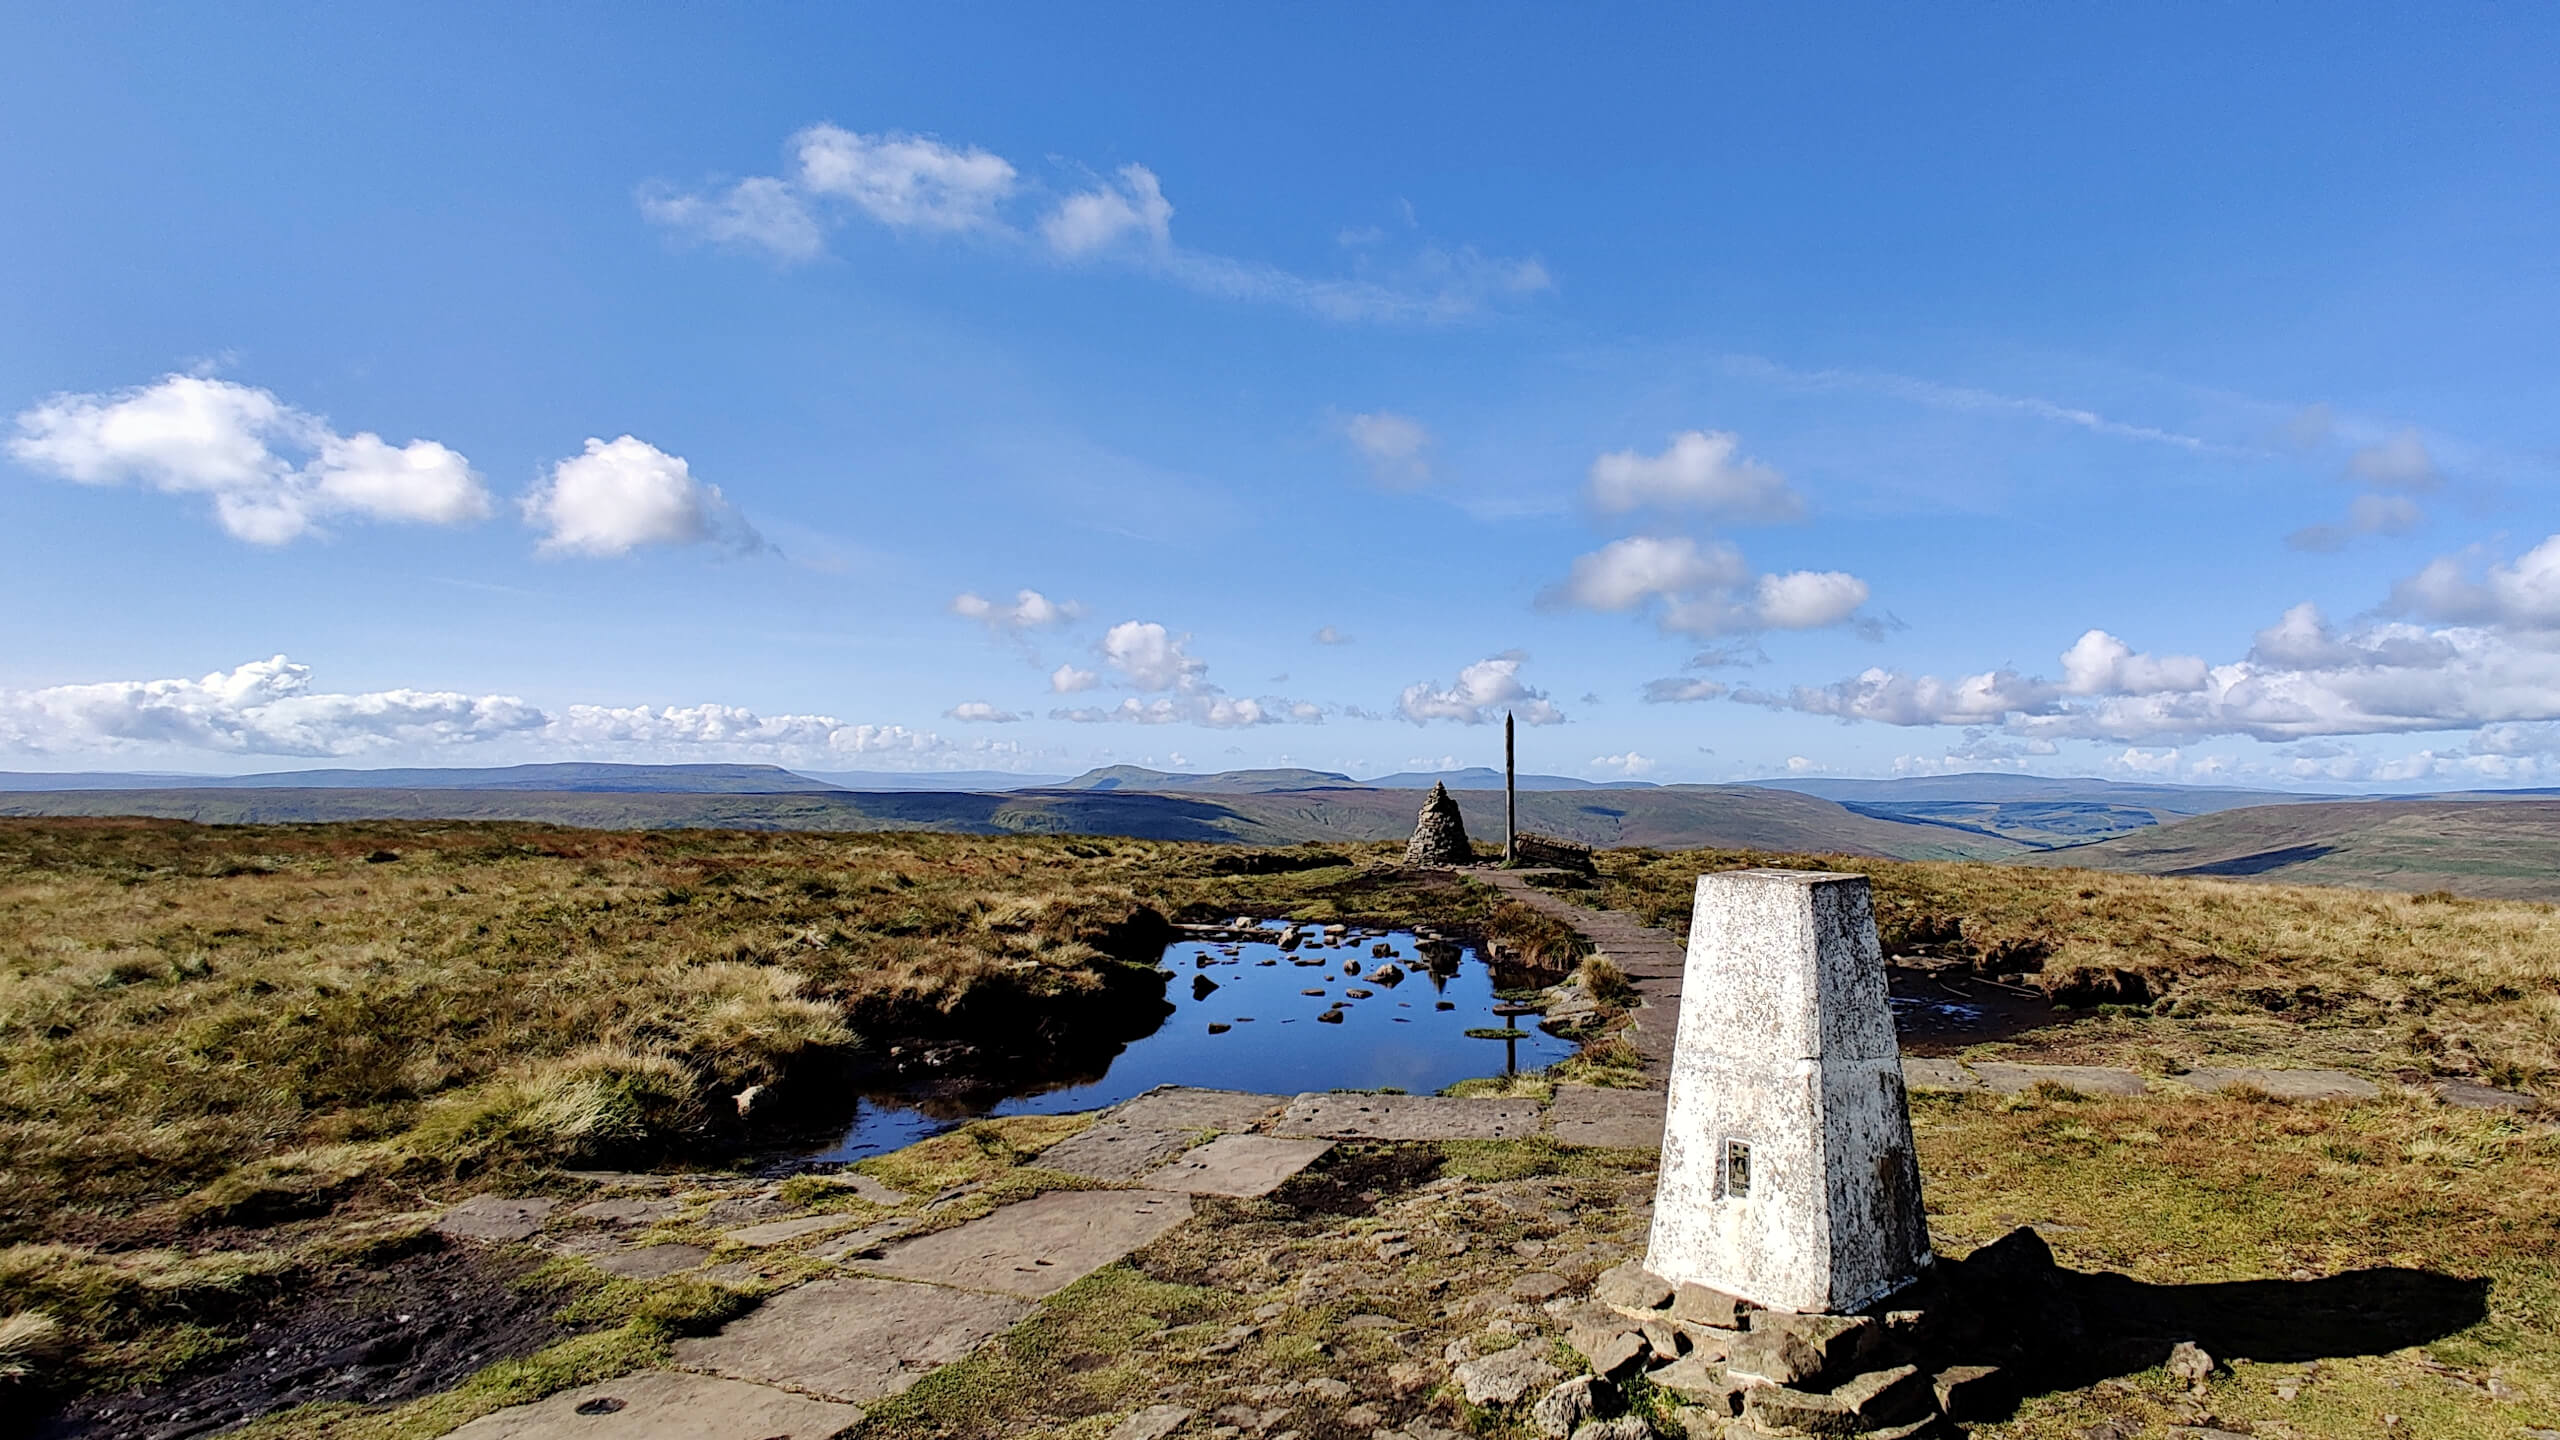 Buckden Pike Walk (The Perfect Yorkshire Dales Day Out)